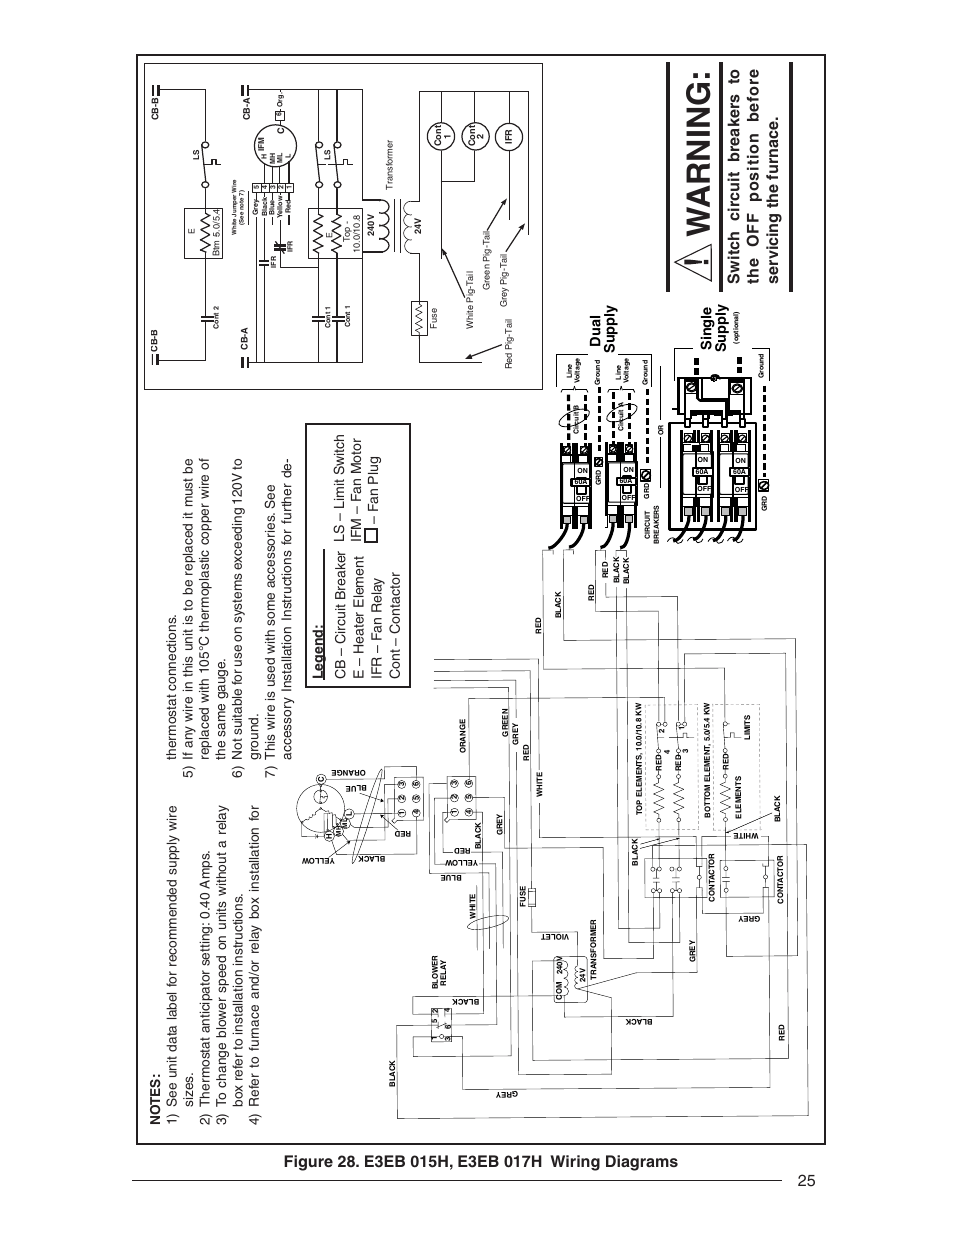 2005 Chevy Clic Radio Wiring Diagram 2003 Chevy Impala